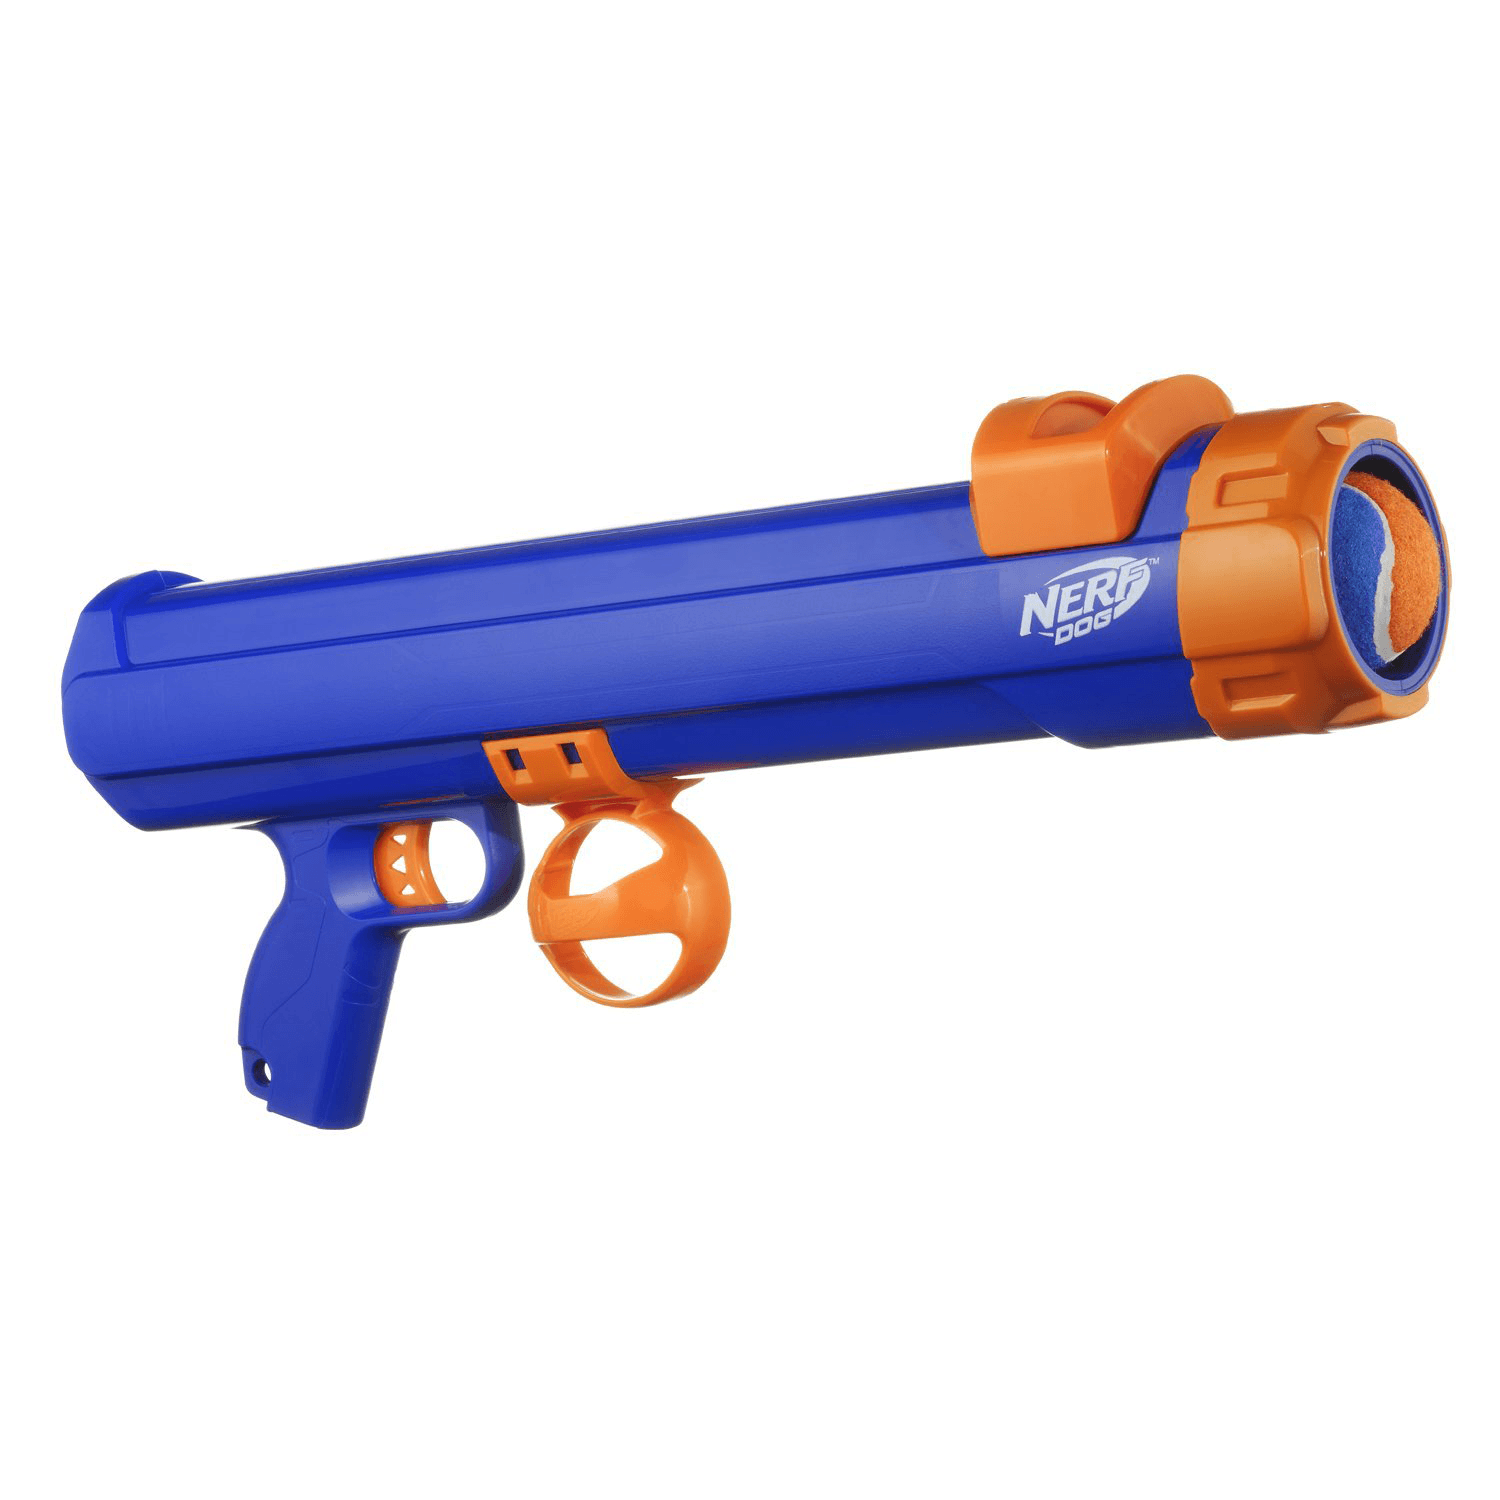 Nerf-Dog-Tennis-Ball-Blaster-with-ball-in-shot-position